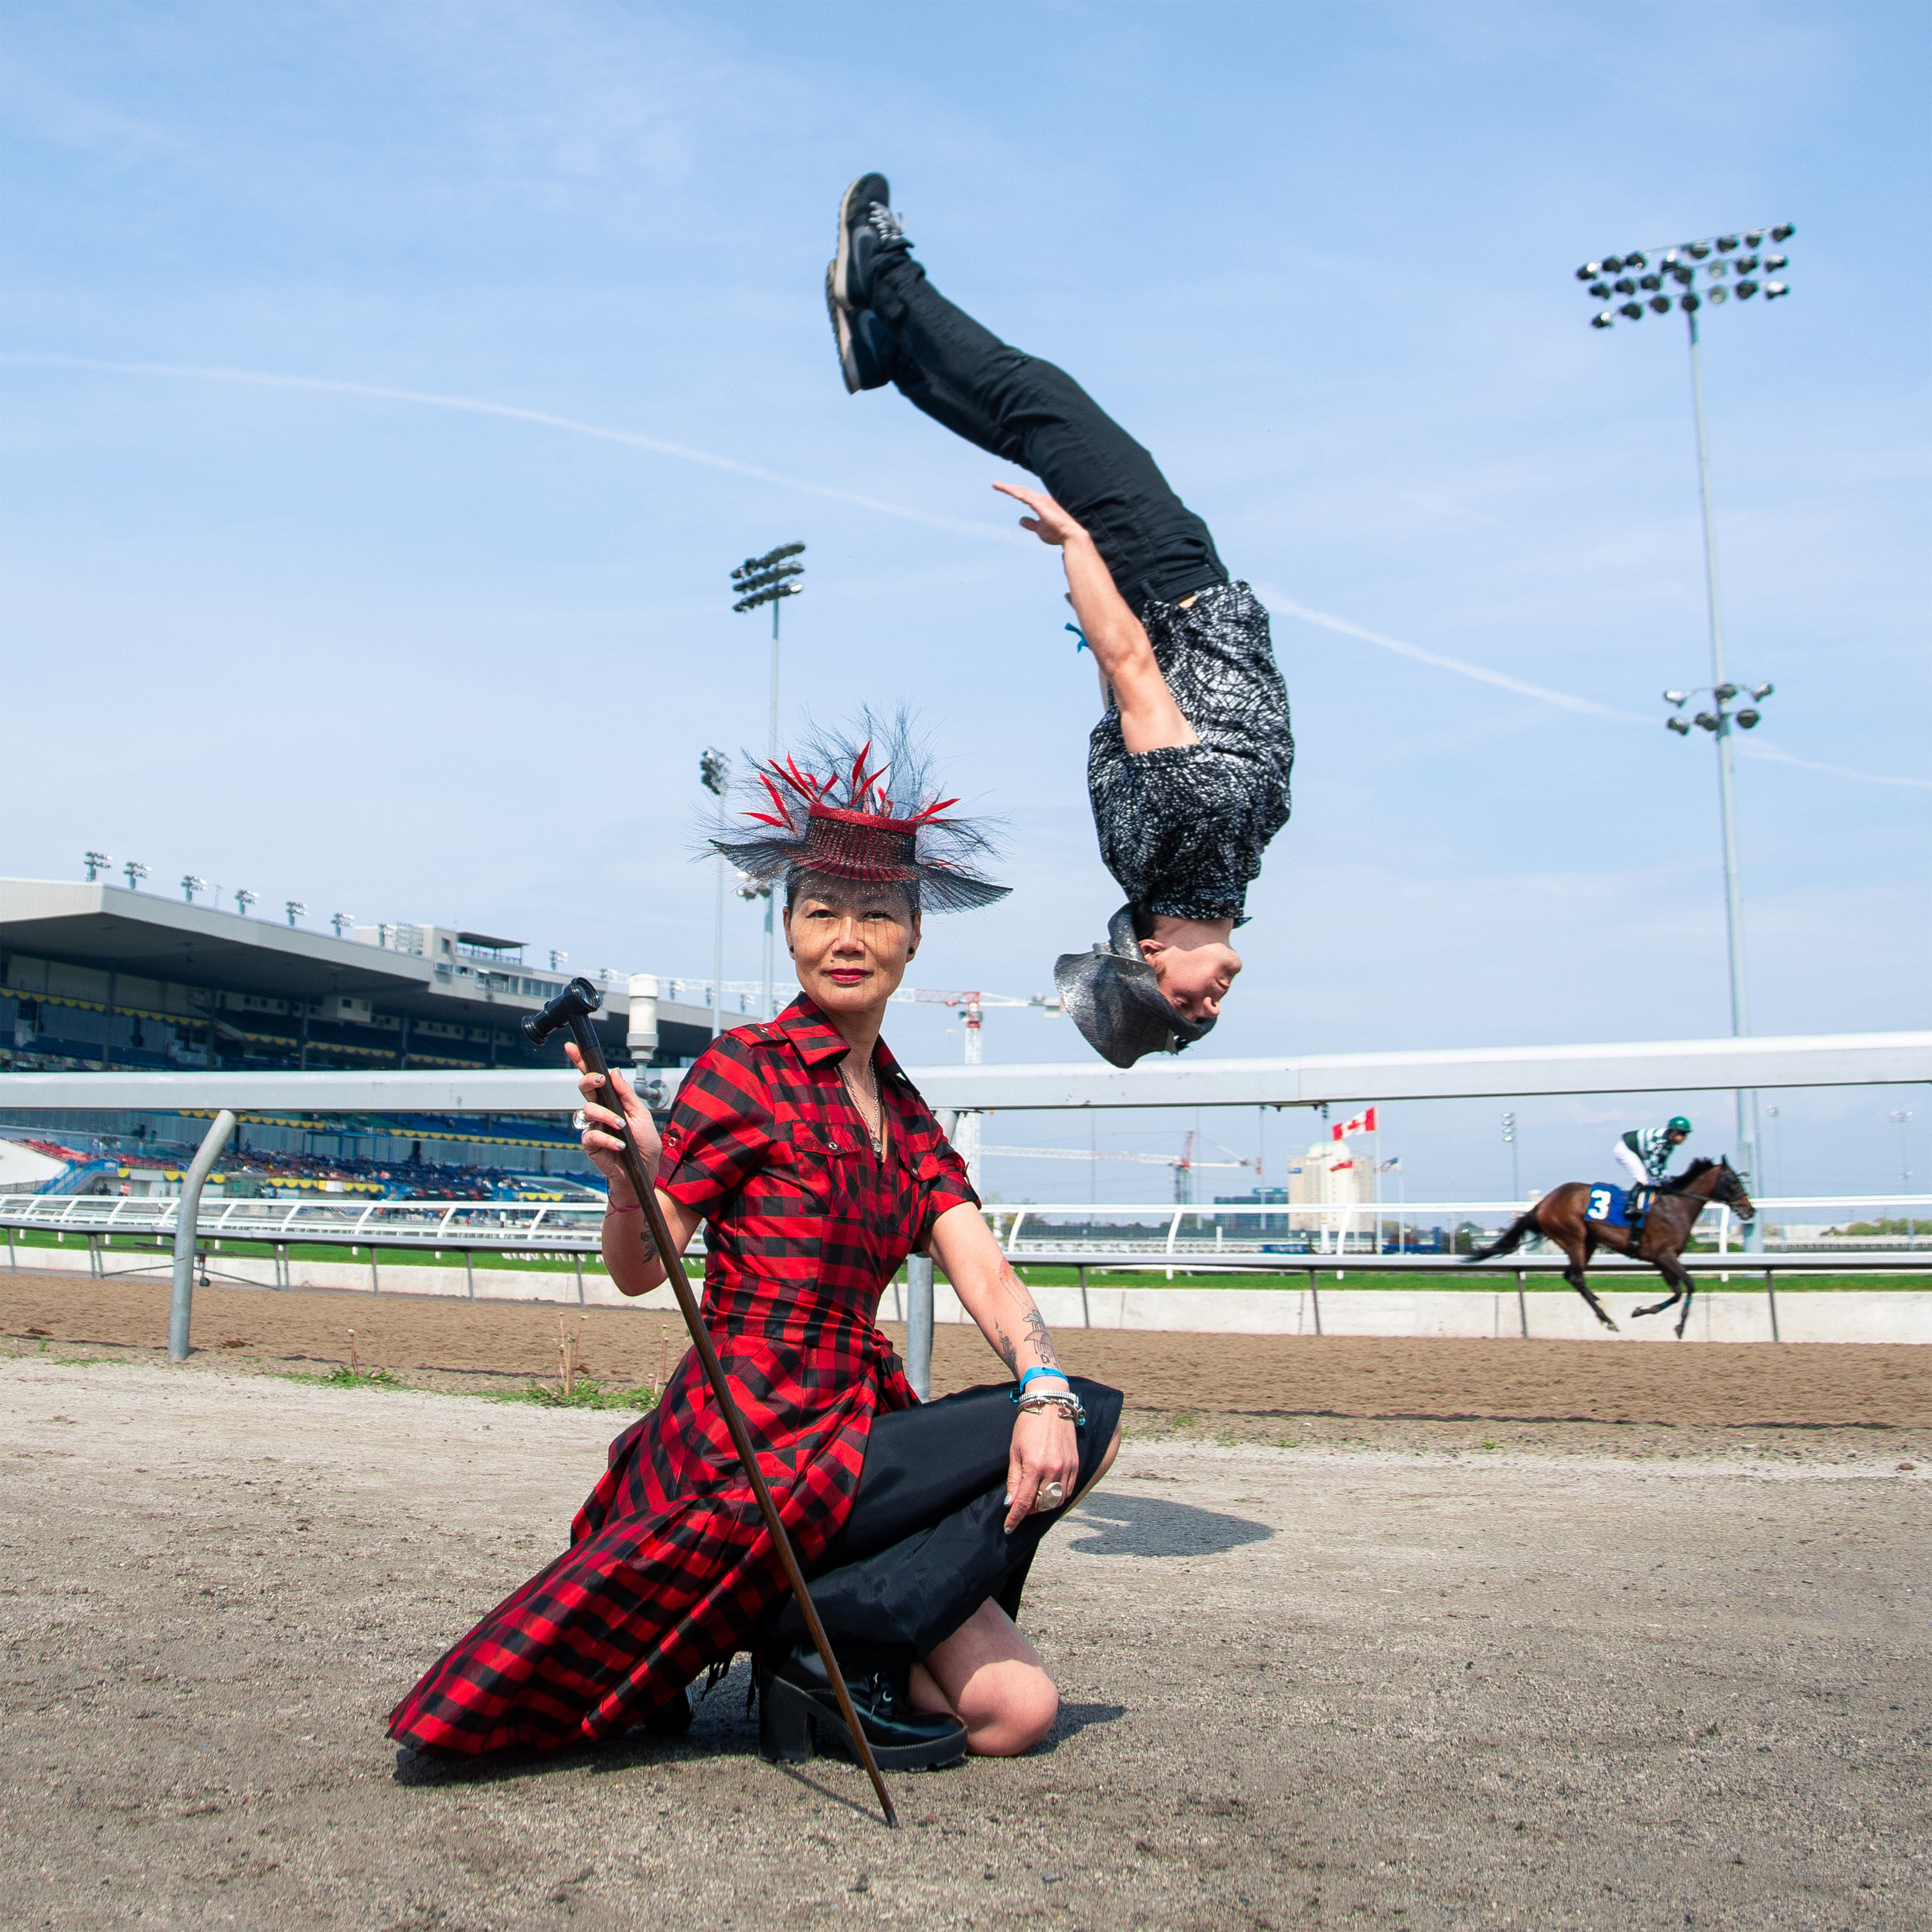 Jay Cheng of Jaycow Millinery at Greenwood Stakes, Woodbine Racetrack with Acrobat Alex Trickoso. Photograph by Jesús Maza Piñero.